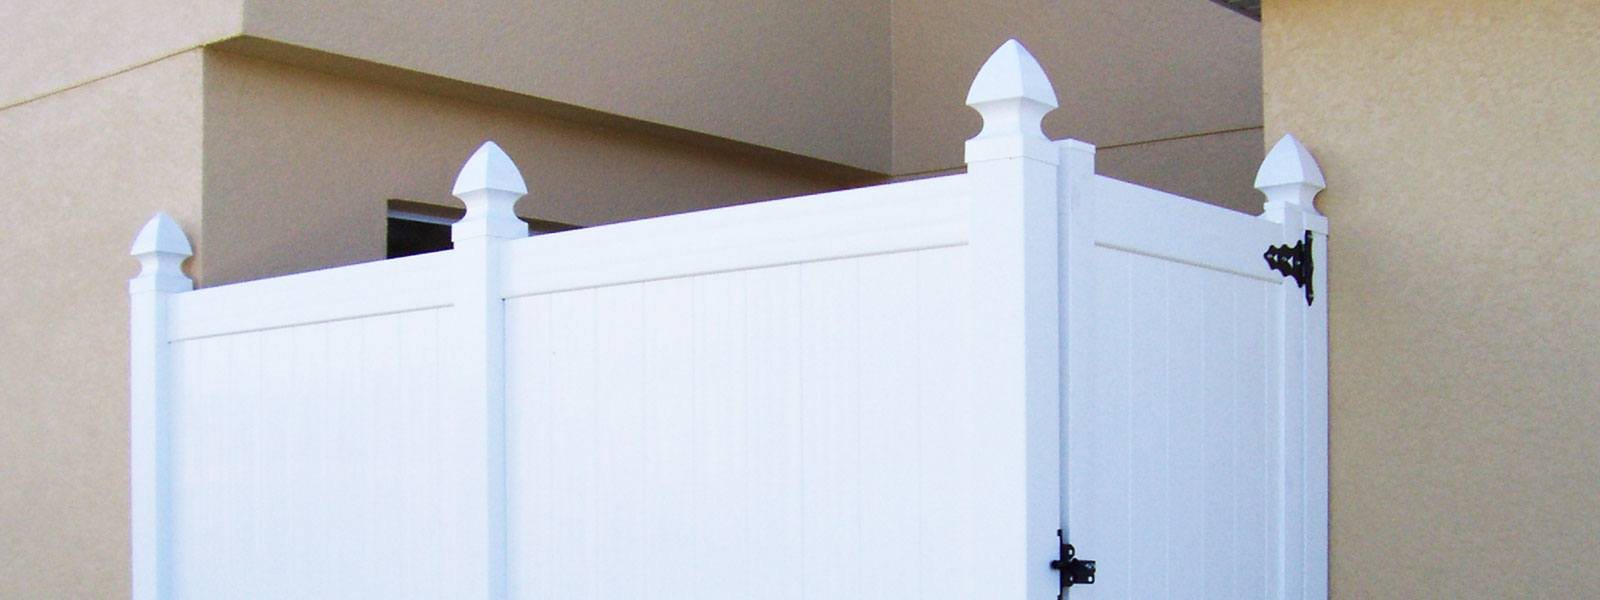 white vinyl fencing with decorative top pieces on each pillar